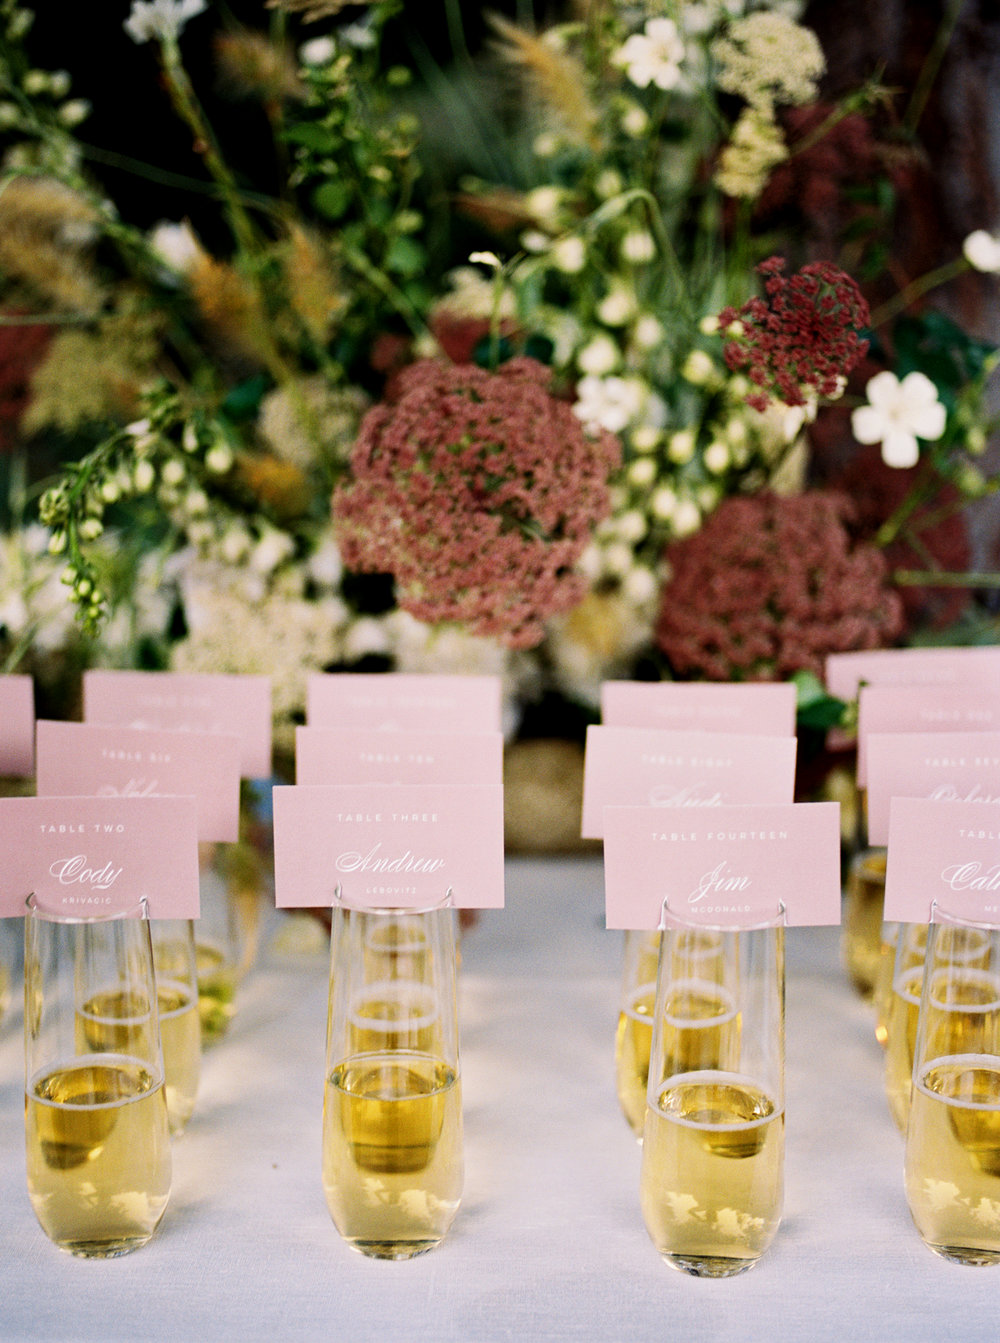 Wedding Escort Card Display.jpg